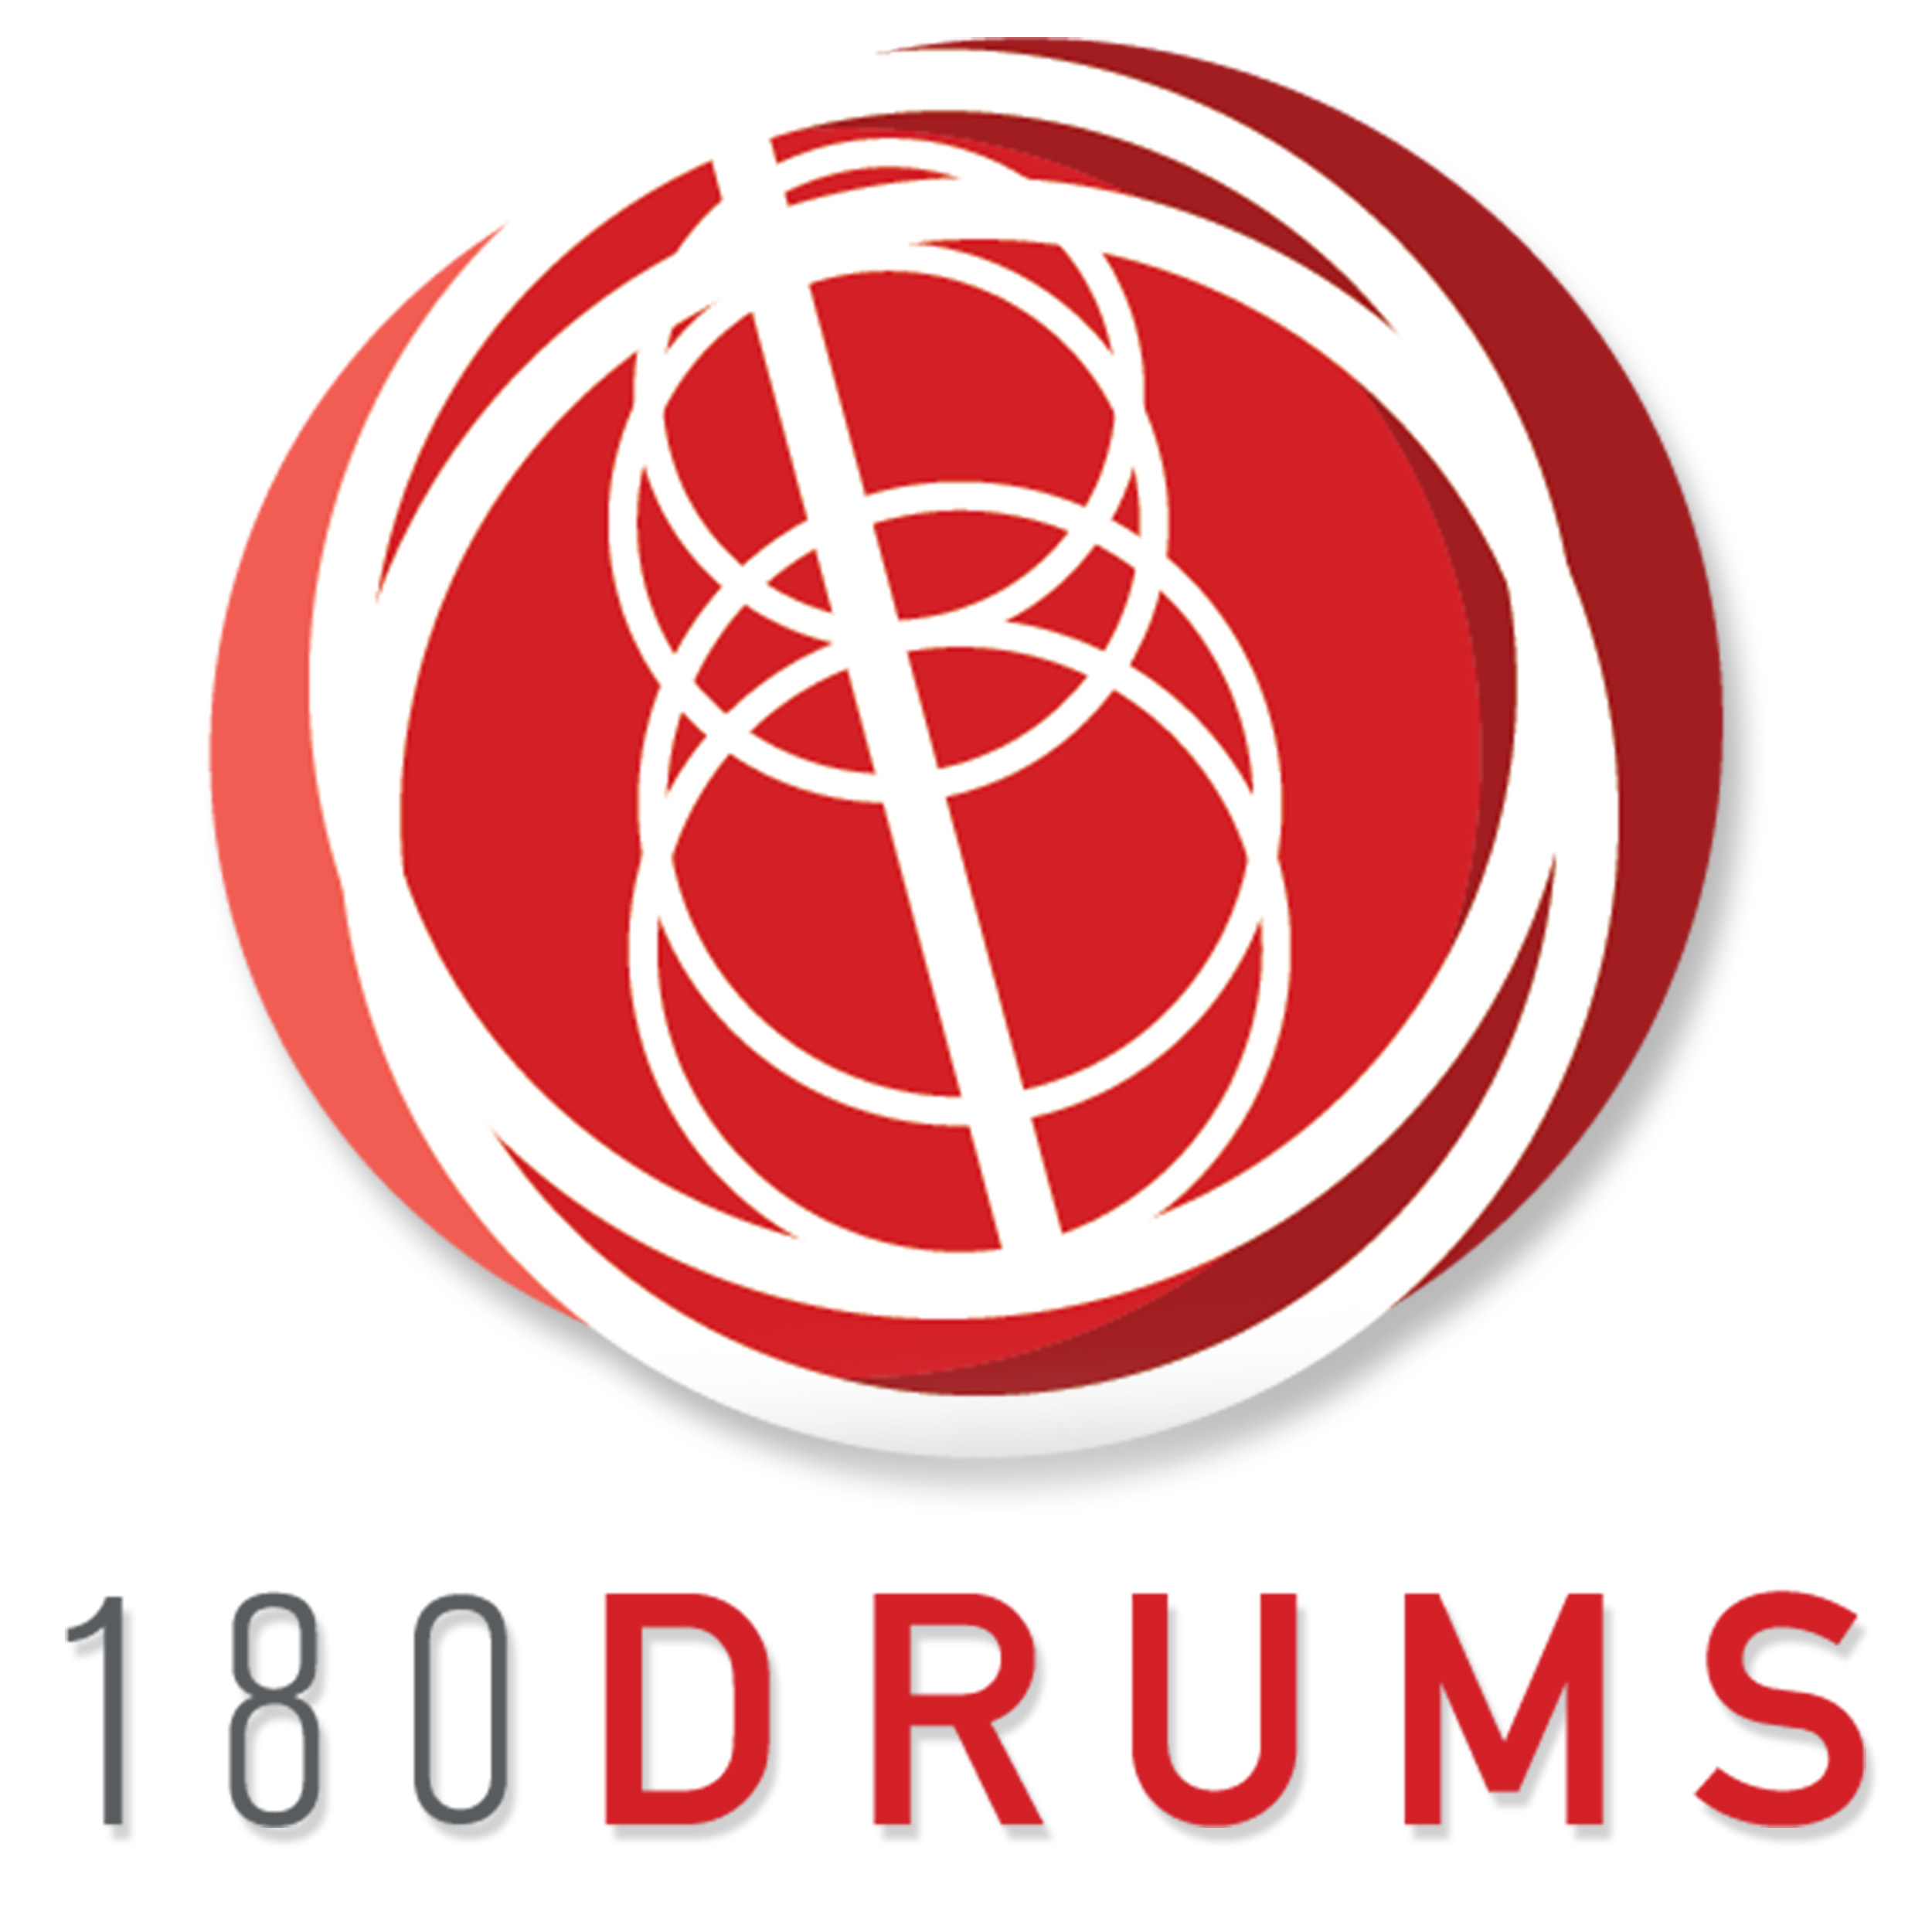 180 drums logo